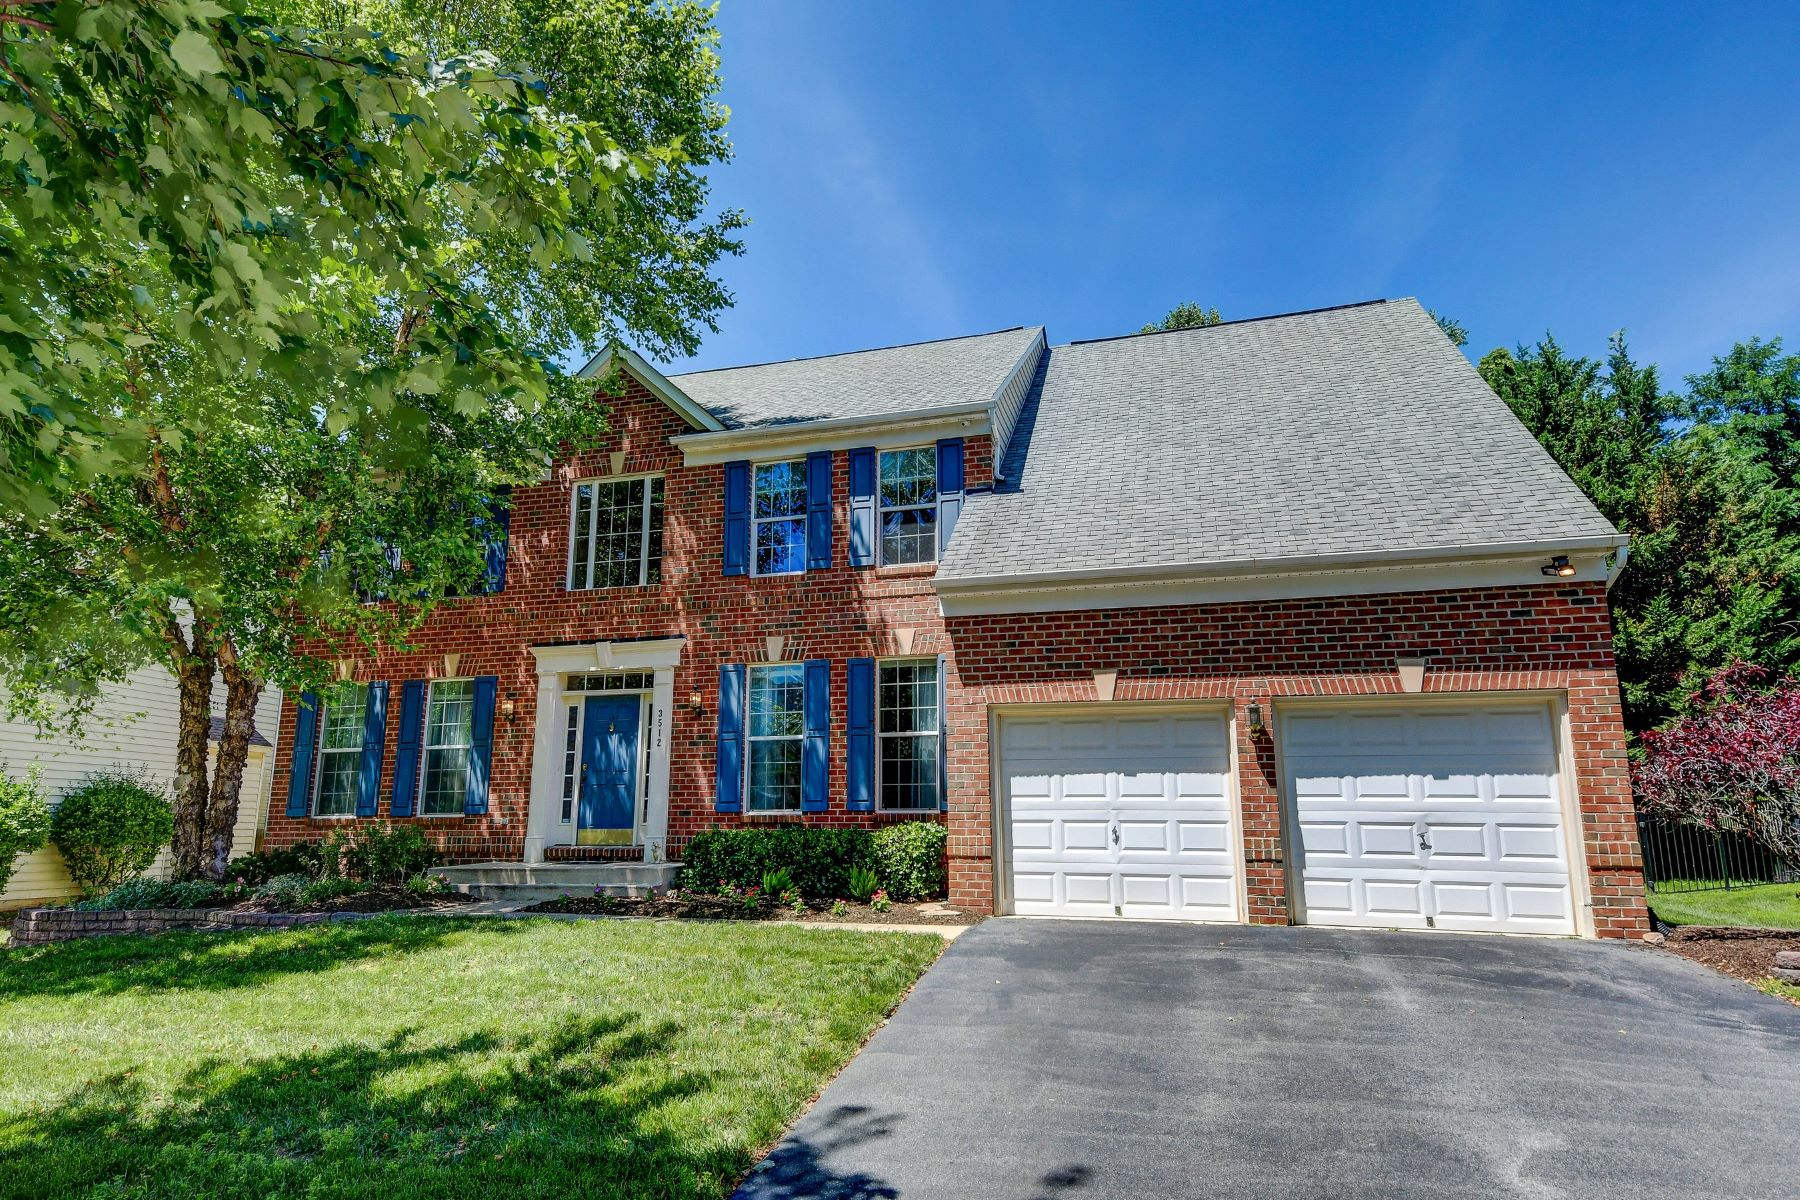 Single Family Homes for Active at Oaks at Garrison Forest 3512 Stoney Creek Court Owings Mills, Maryland 21117 United States